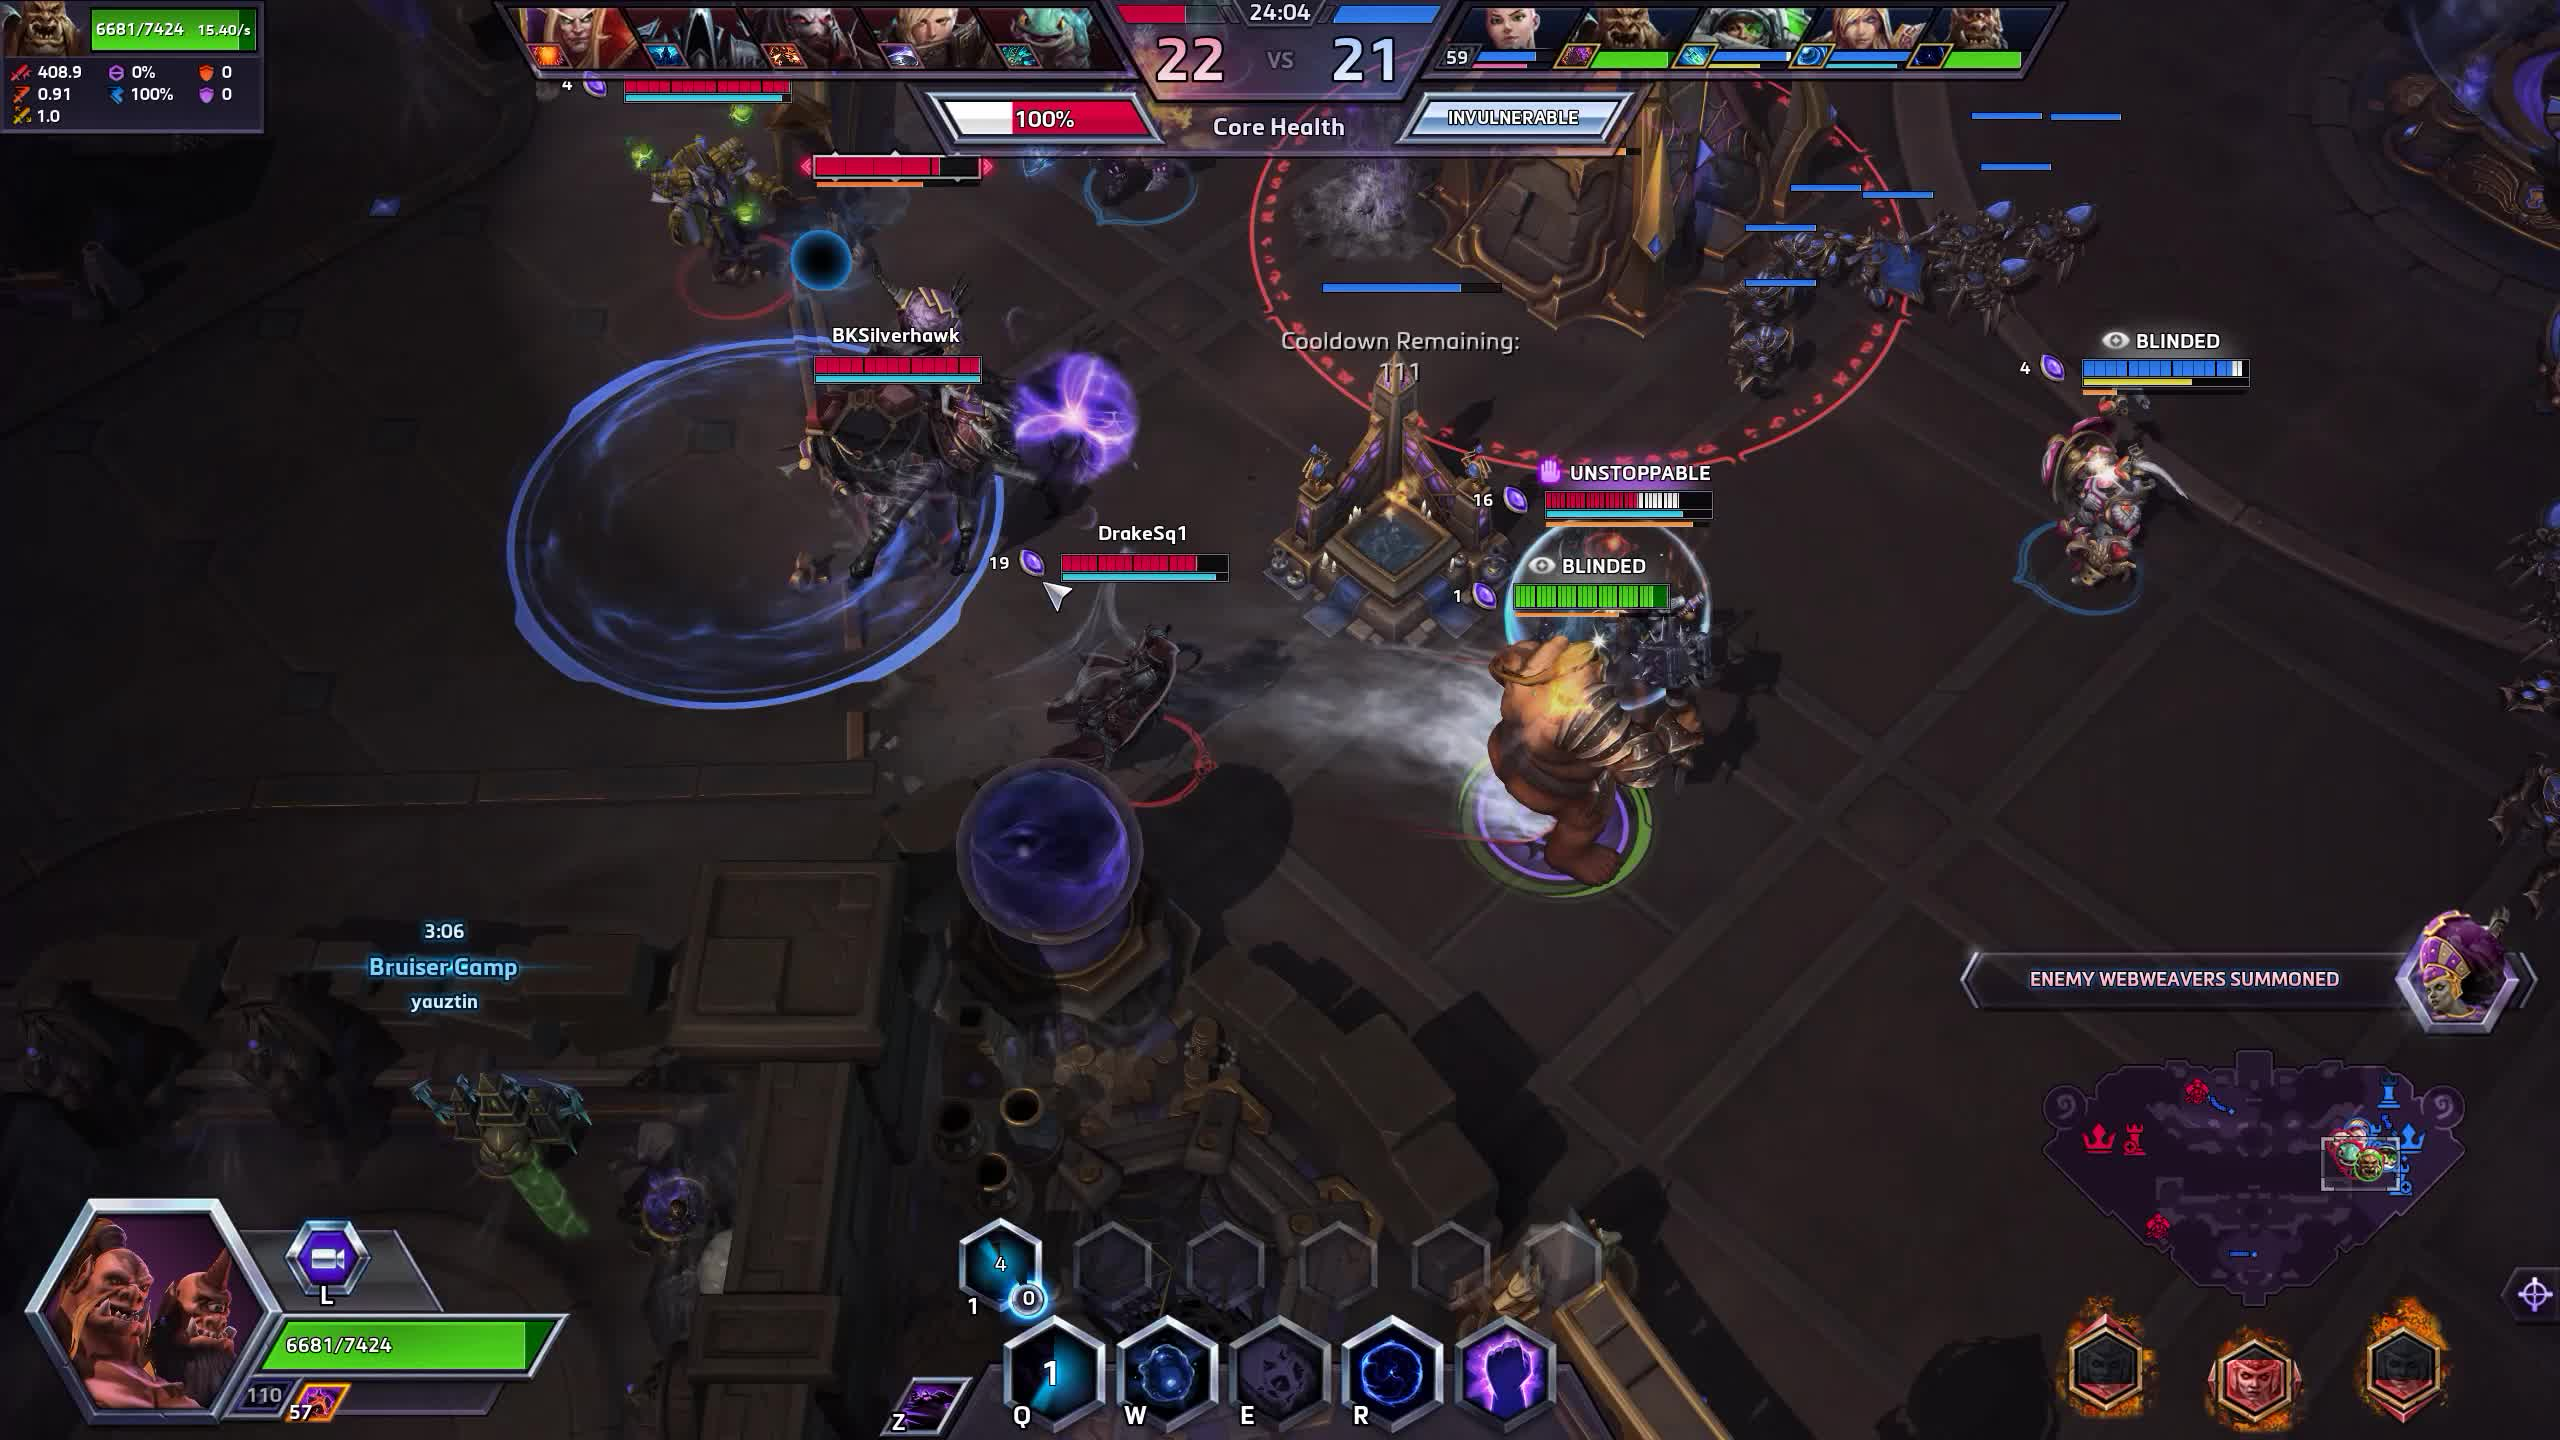 heroesofthestorm, Heroes of the Storm 2018.12.01 - 03.54.26.08.DVR Trim GIFs